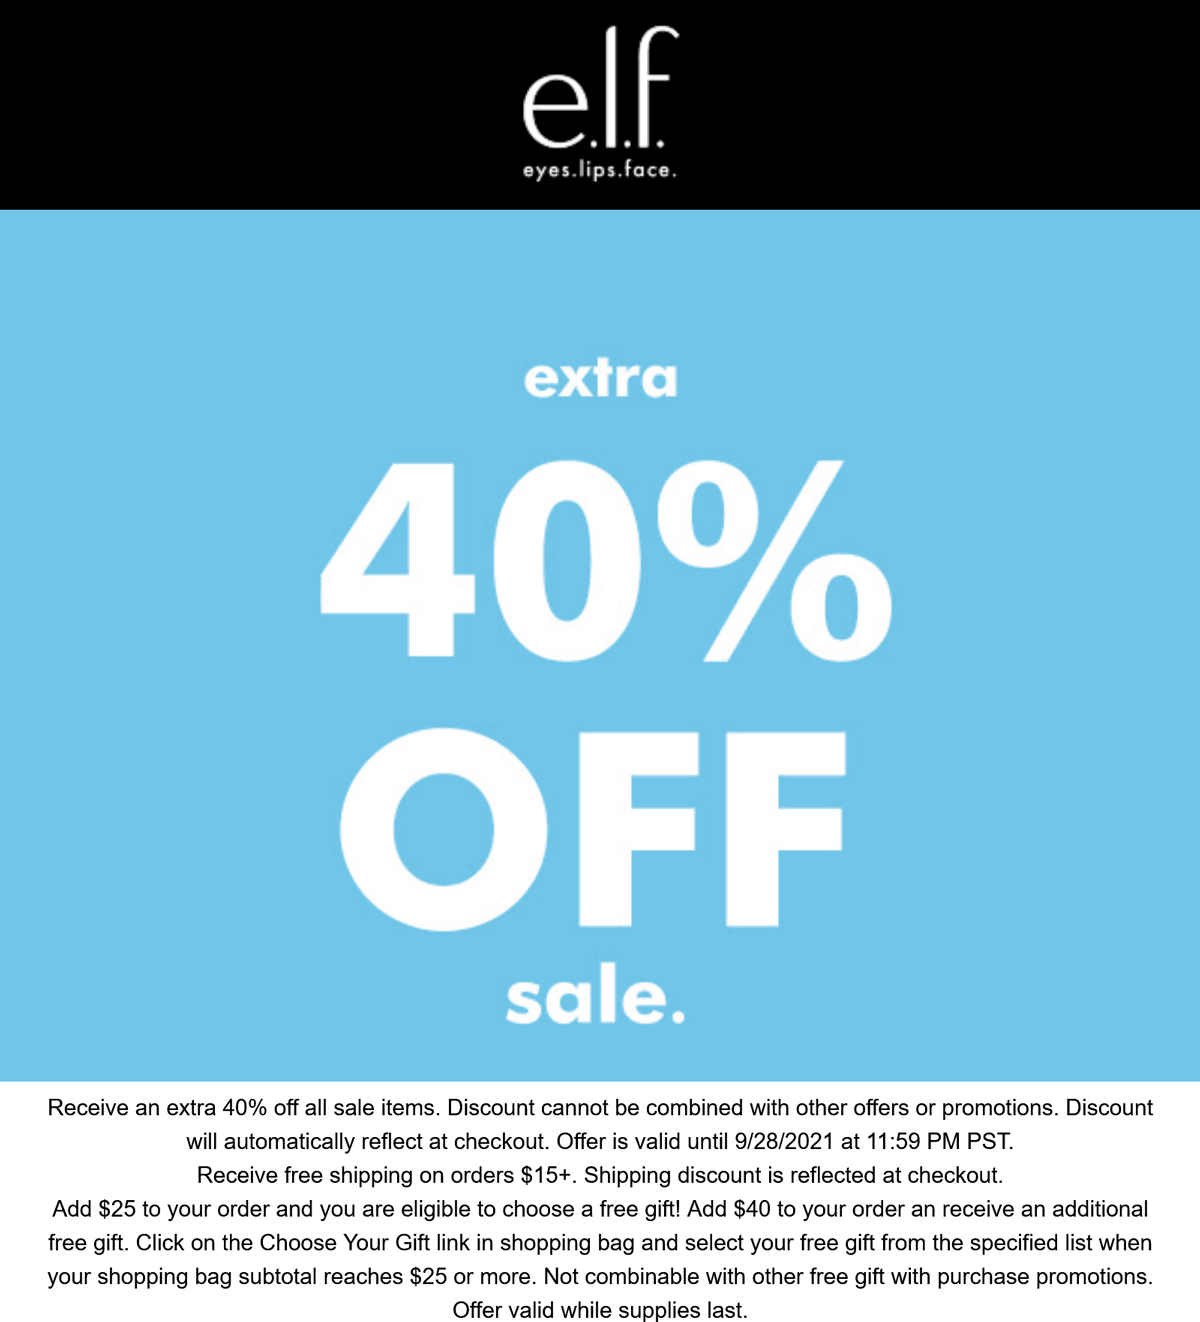 e.l.f. Cosmetics stores Coupon  Extra 40% off sale items at e.l.f. Cosmetics #elfcosmetics